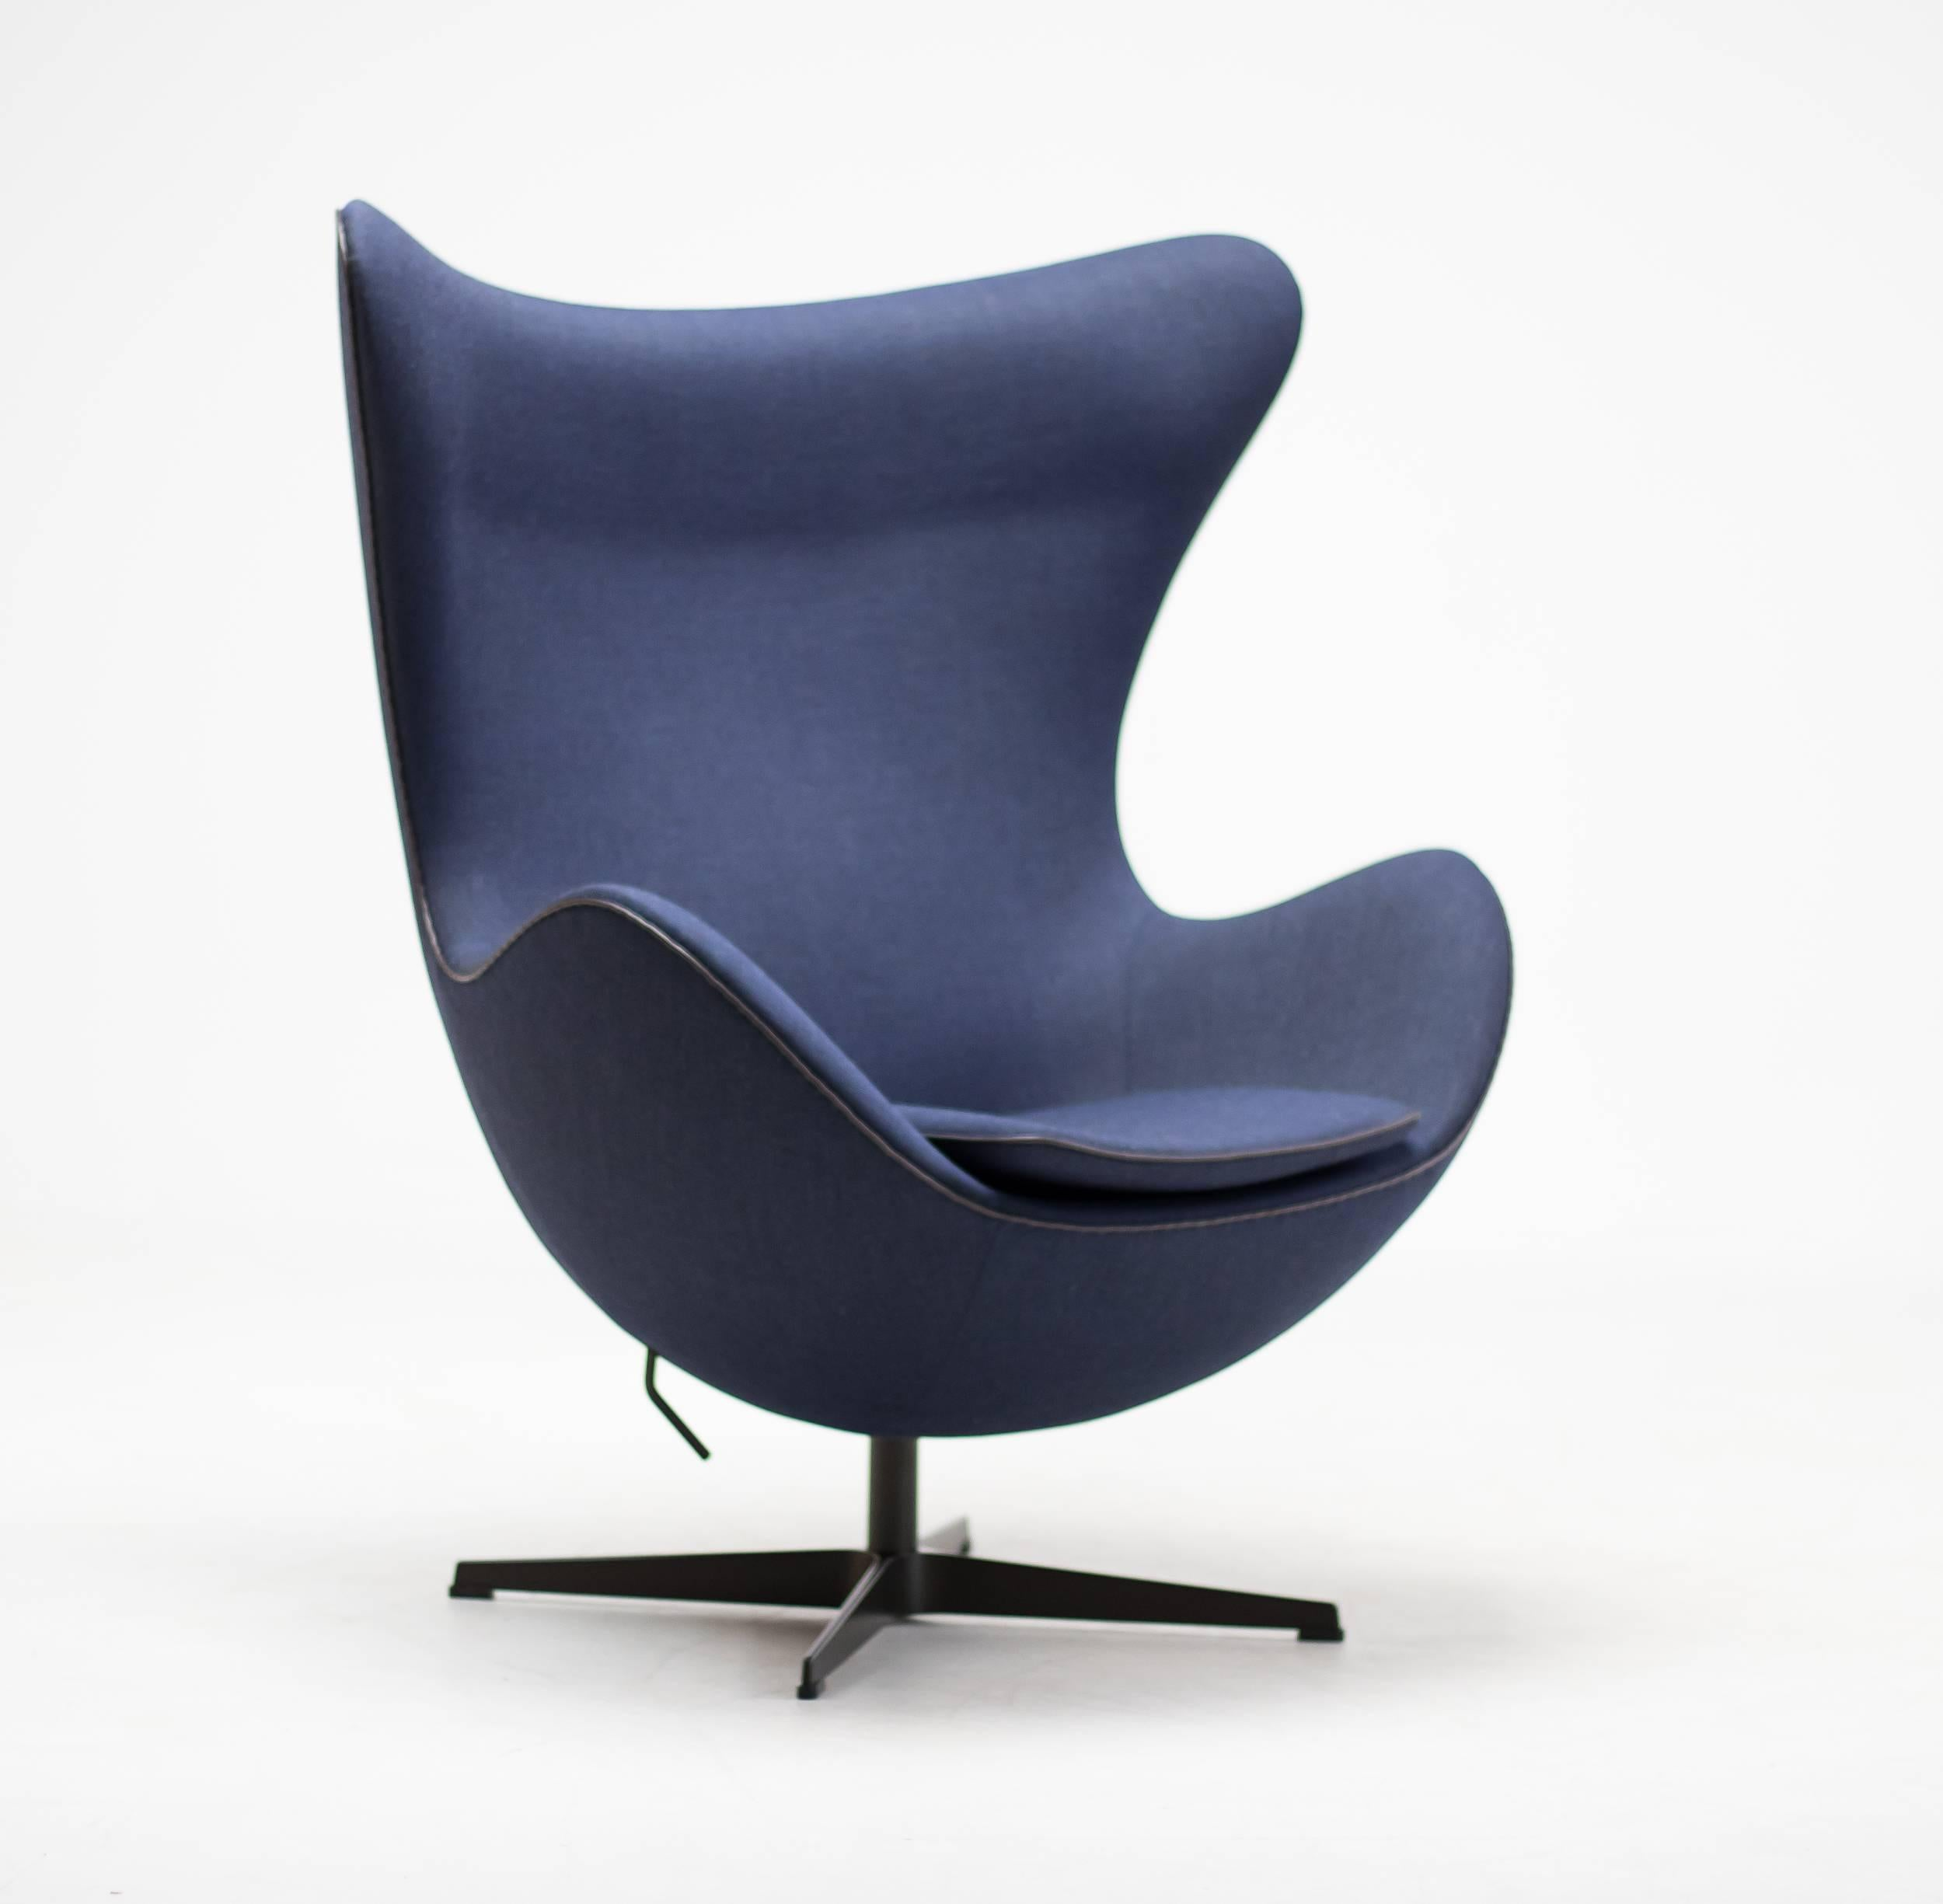 Aluminum Fritz Hansenu0027s Choice, Limited Edition Egg Chair By Arne Jacobsen  For Sale